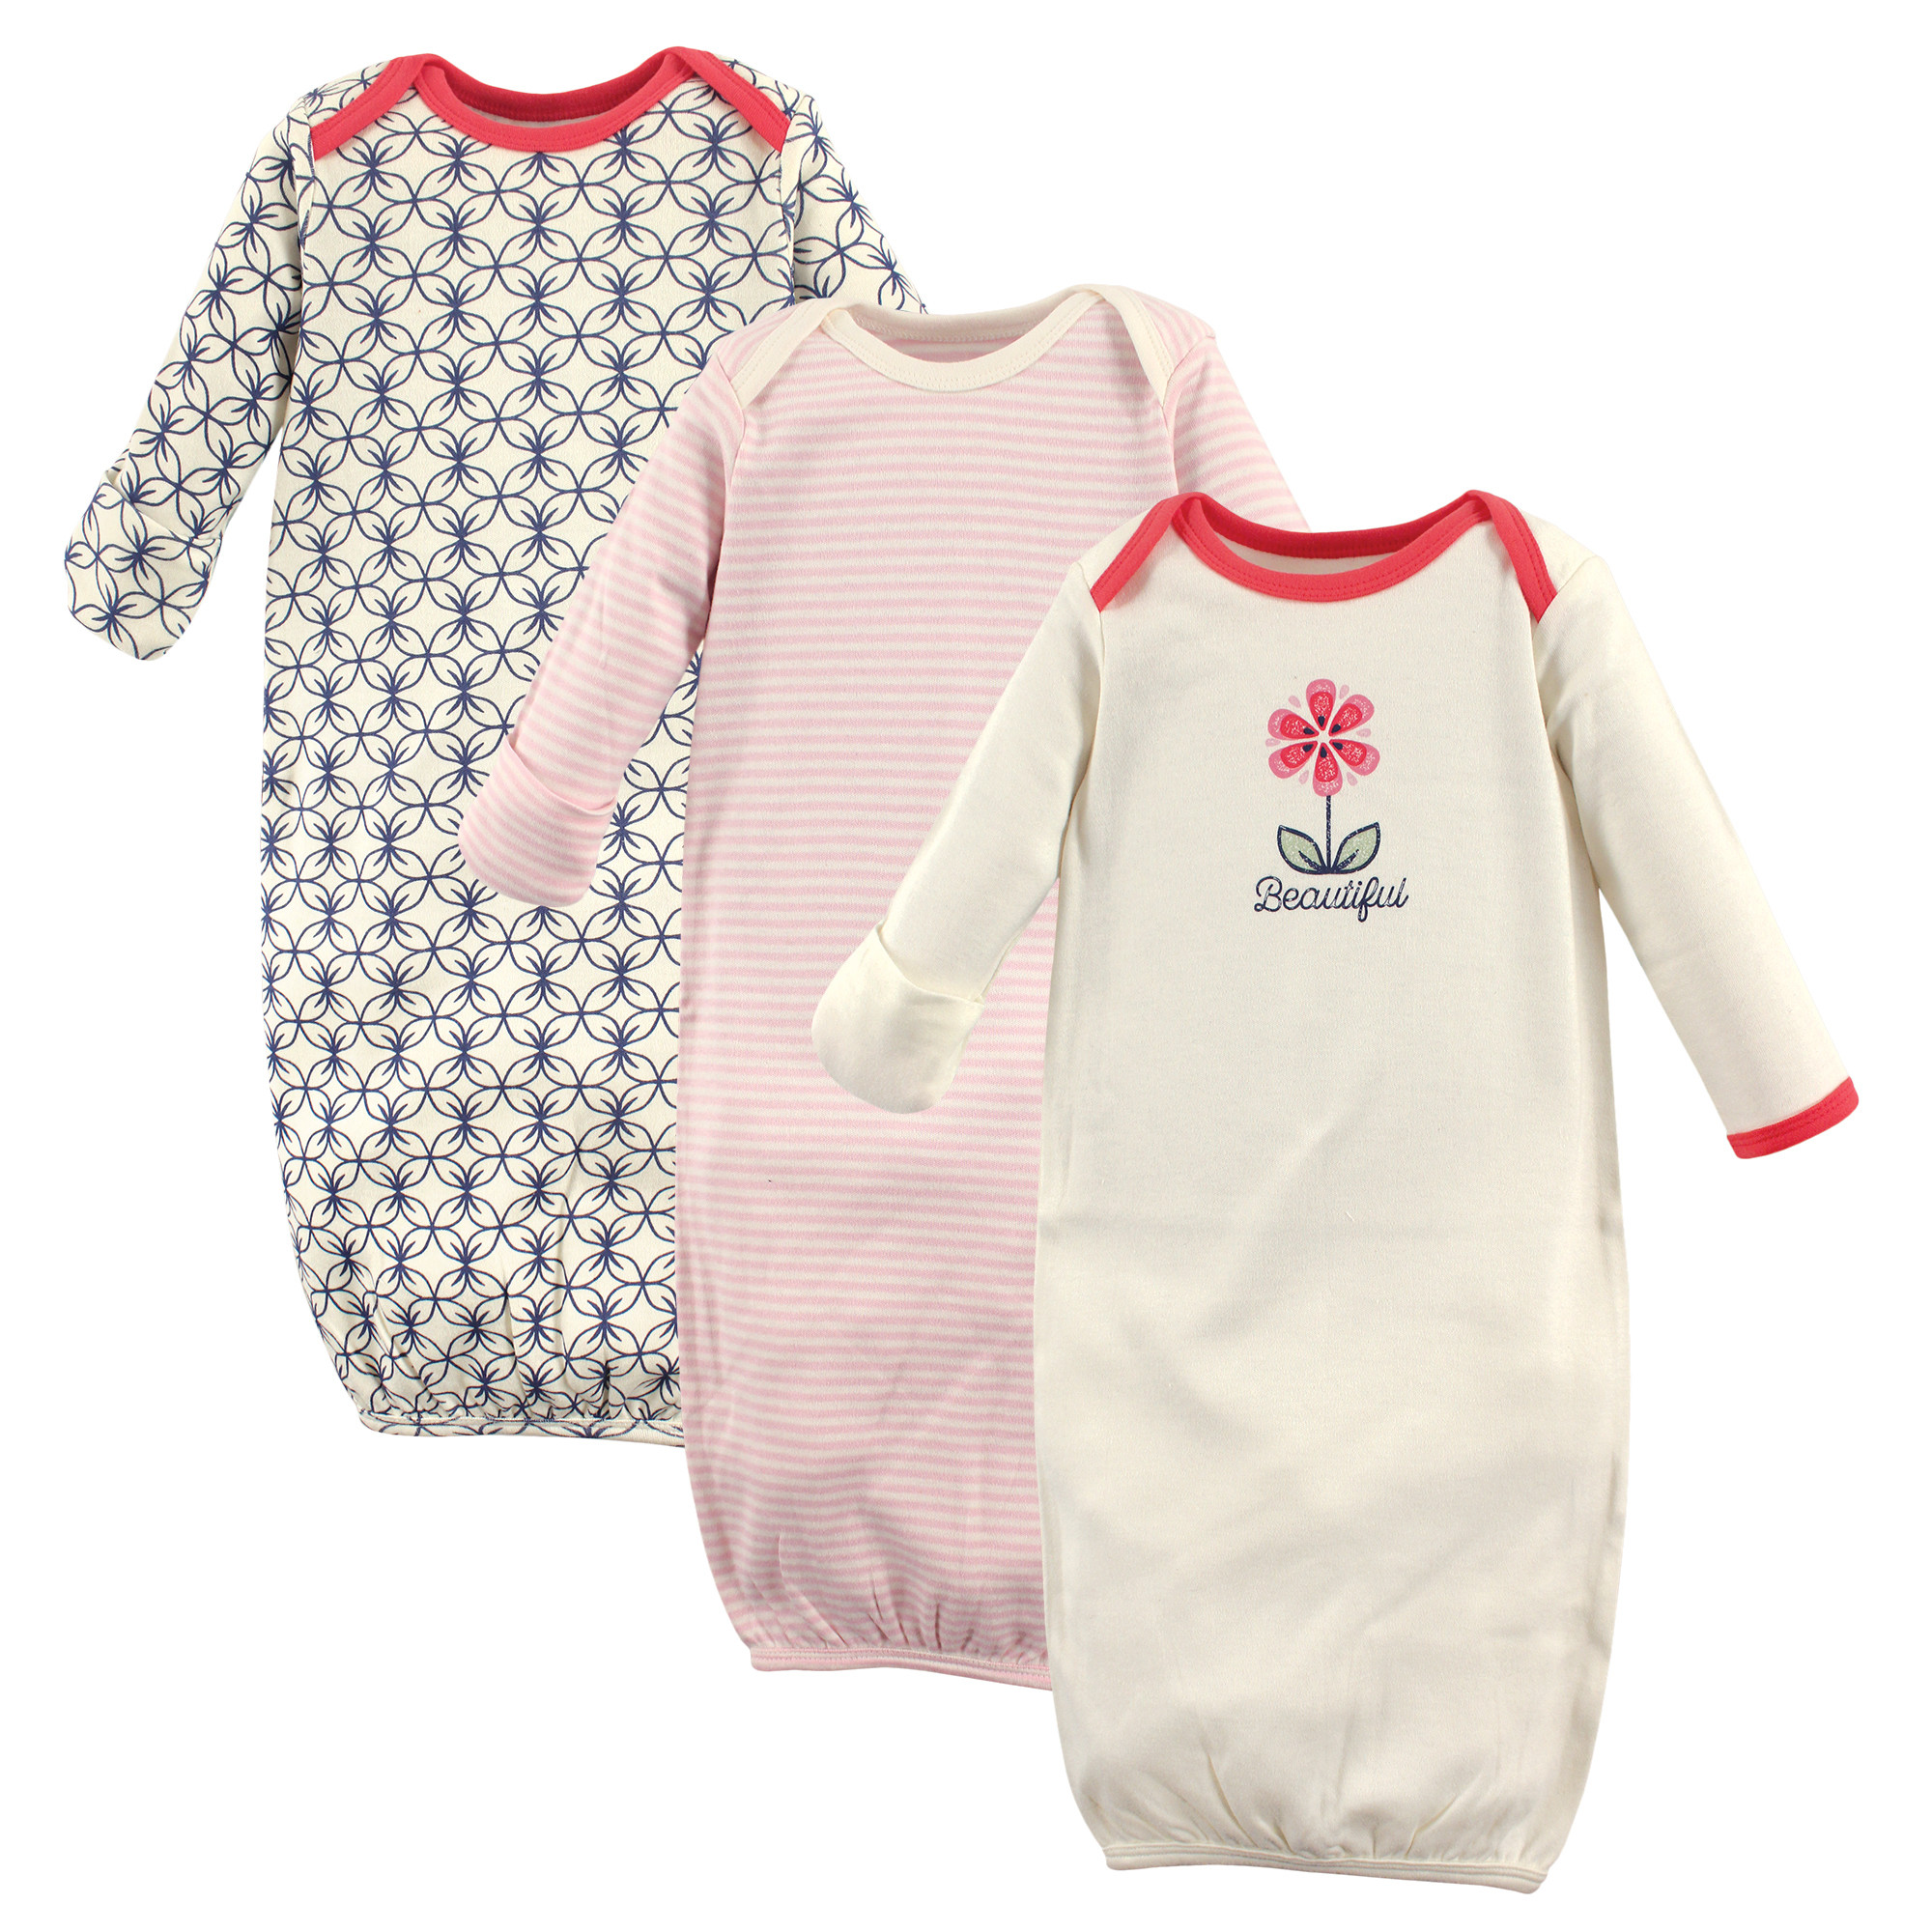 BabyVision | Organic clothing | Sleeping gowns | Affordable Infant ...